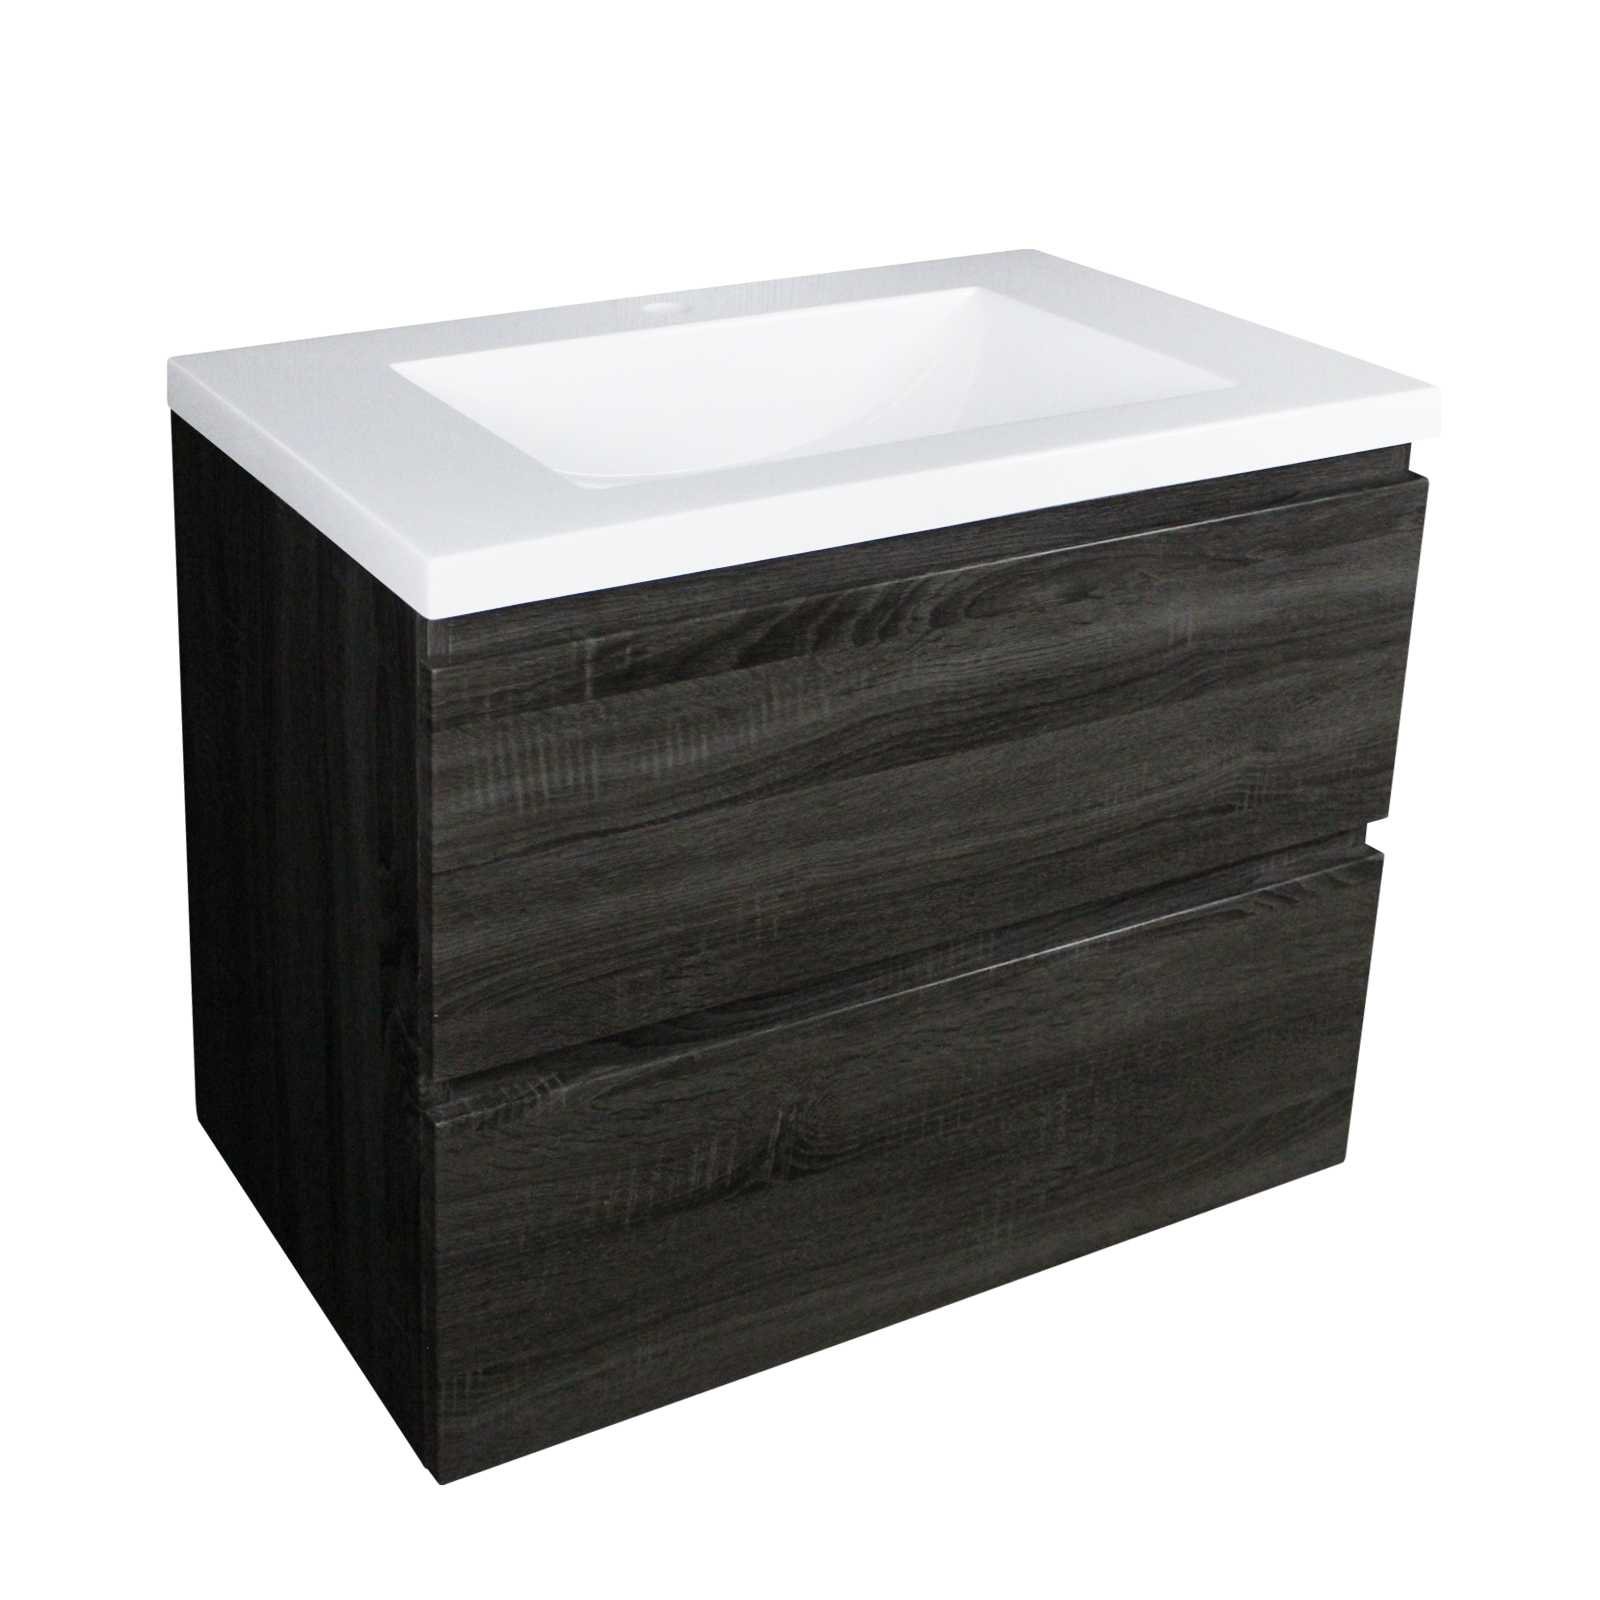 900mm Dark Grey Wood Grain Wall Hung Drawer Vanity